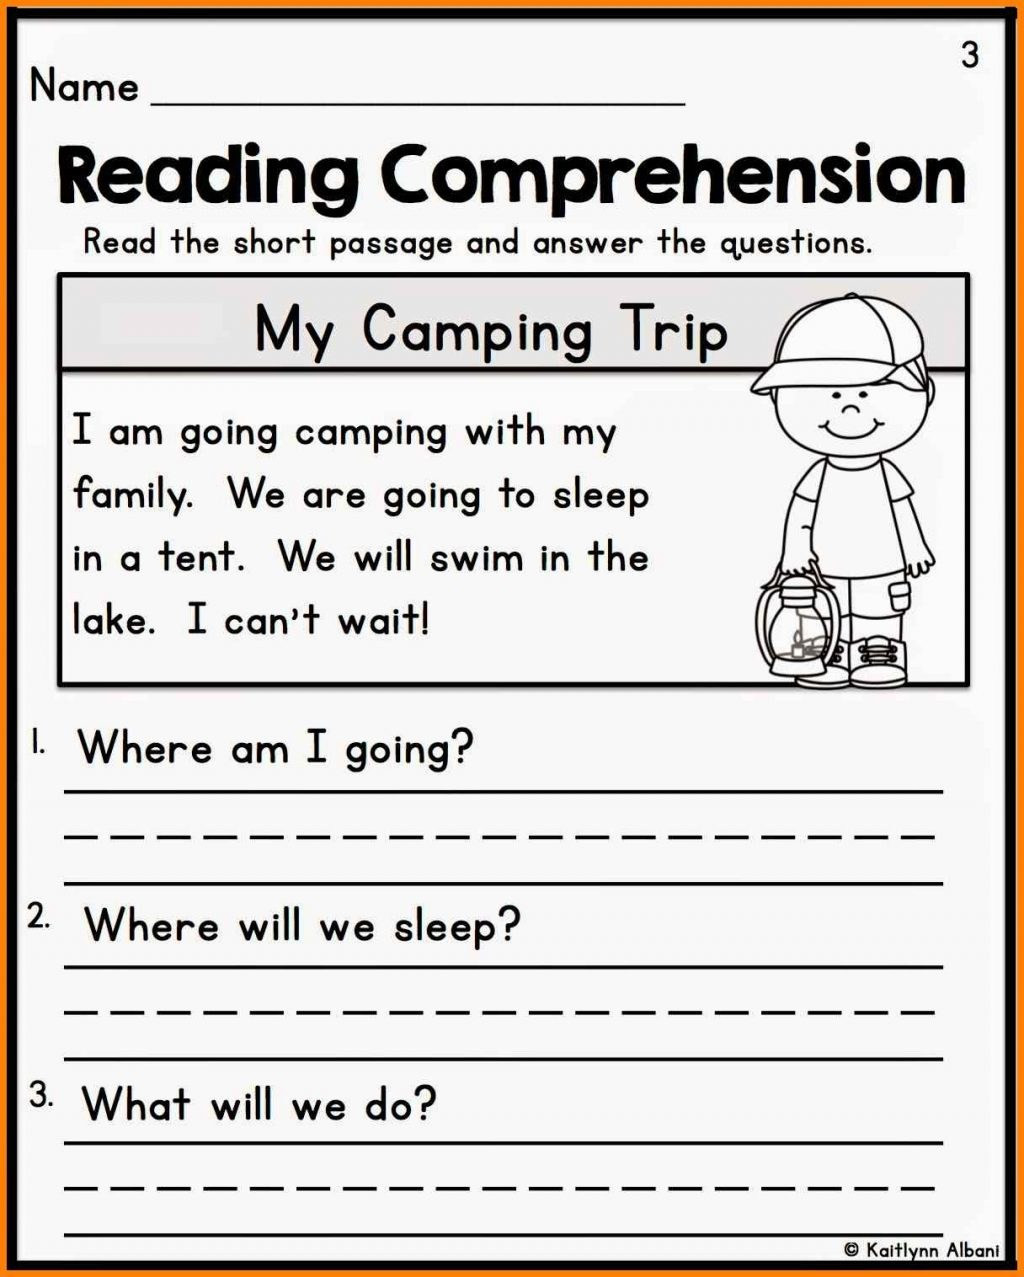 6th Grade Reading Worksheets Printable Everyday Math 6th Grade Grade 4 Science Light Worksheets